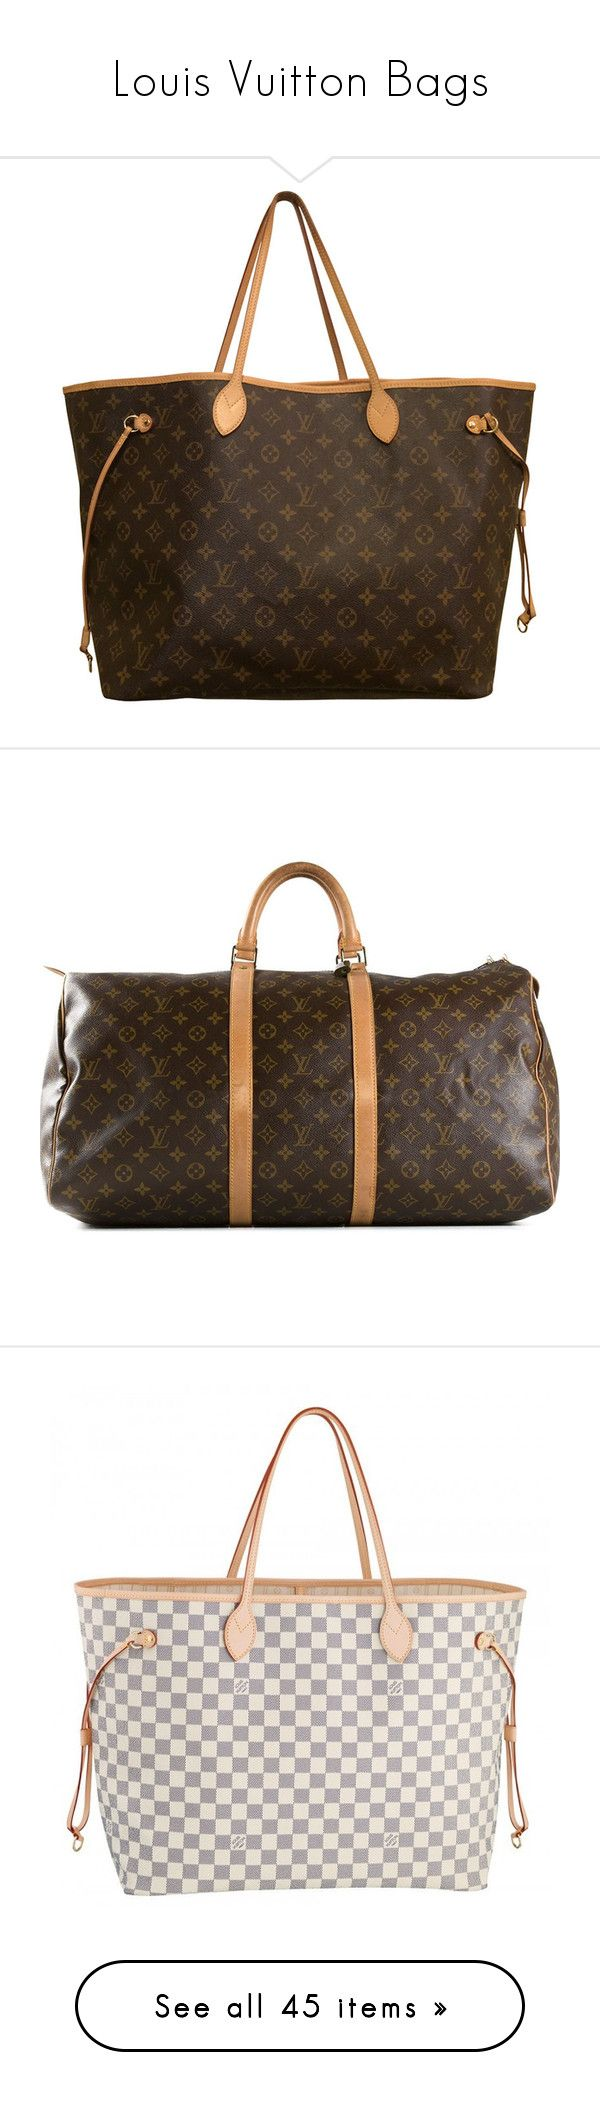 """Louis Vuitton Bags"" by dianasf ❤ liked on Polyvore featuring louisvuitton, bags, handbags, tote bags, handbags totes, monogrammed tote bags, louis vuitton purse, man bag, brown tote bags and luggage"